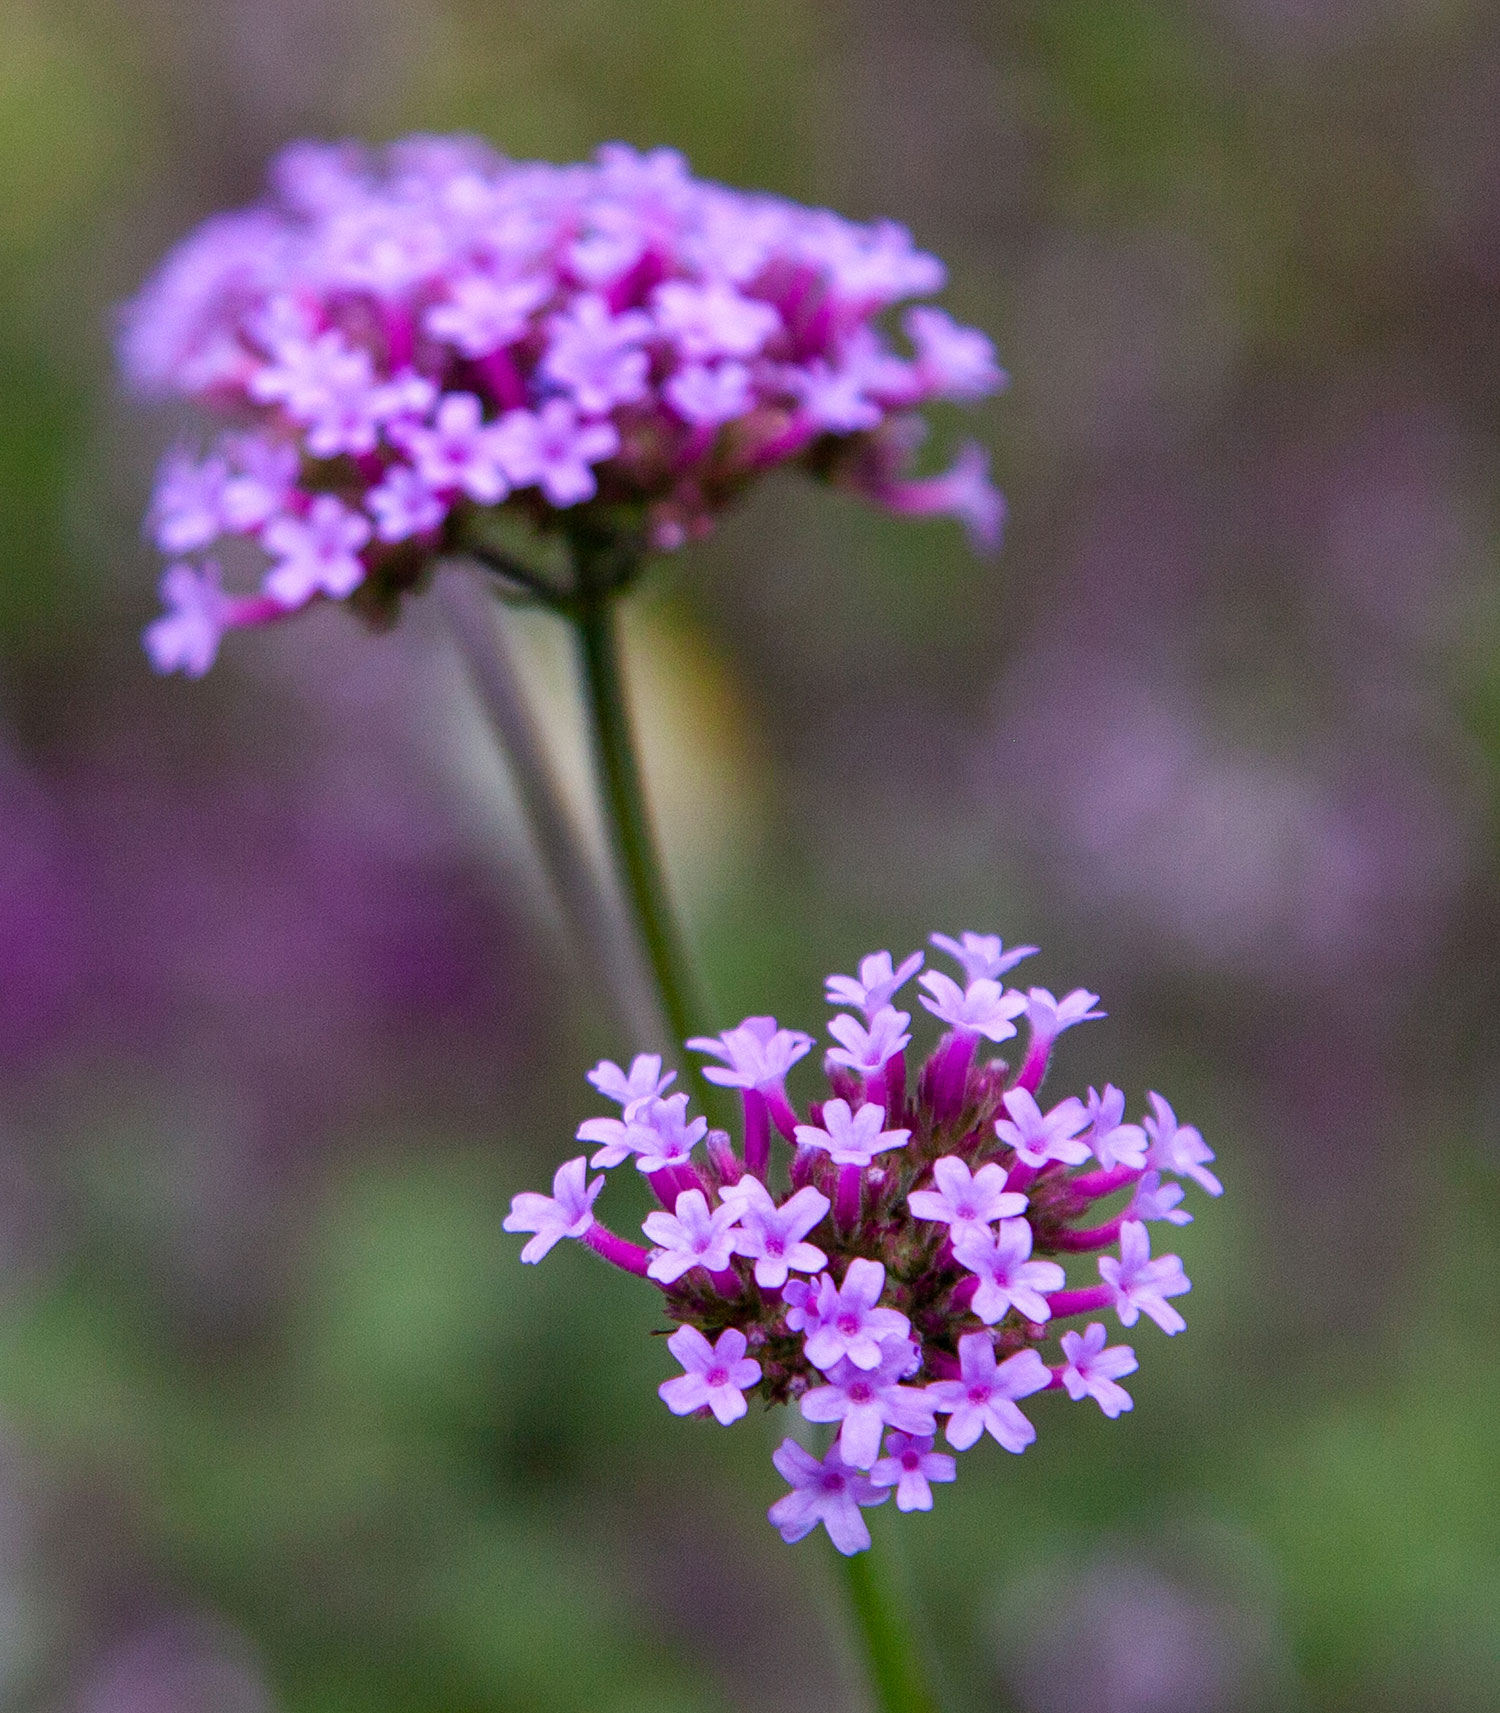 Tall Purples ( or Verbena Bonariensis) are the Featured Flower on this episode of Life in Bloom!